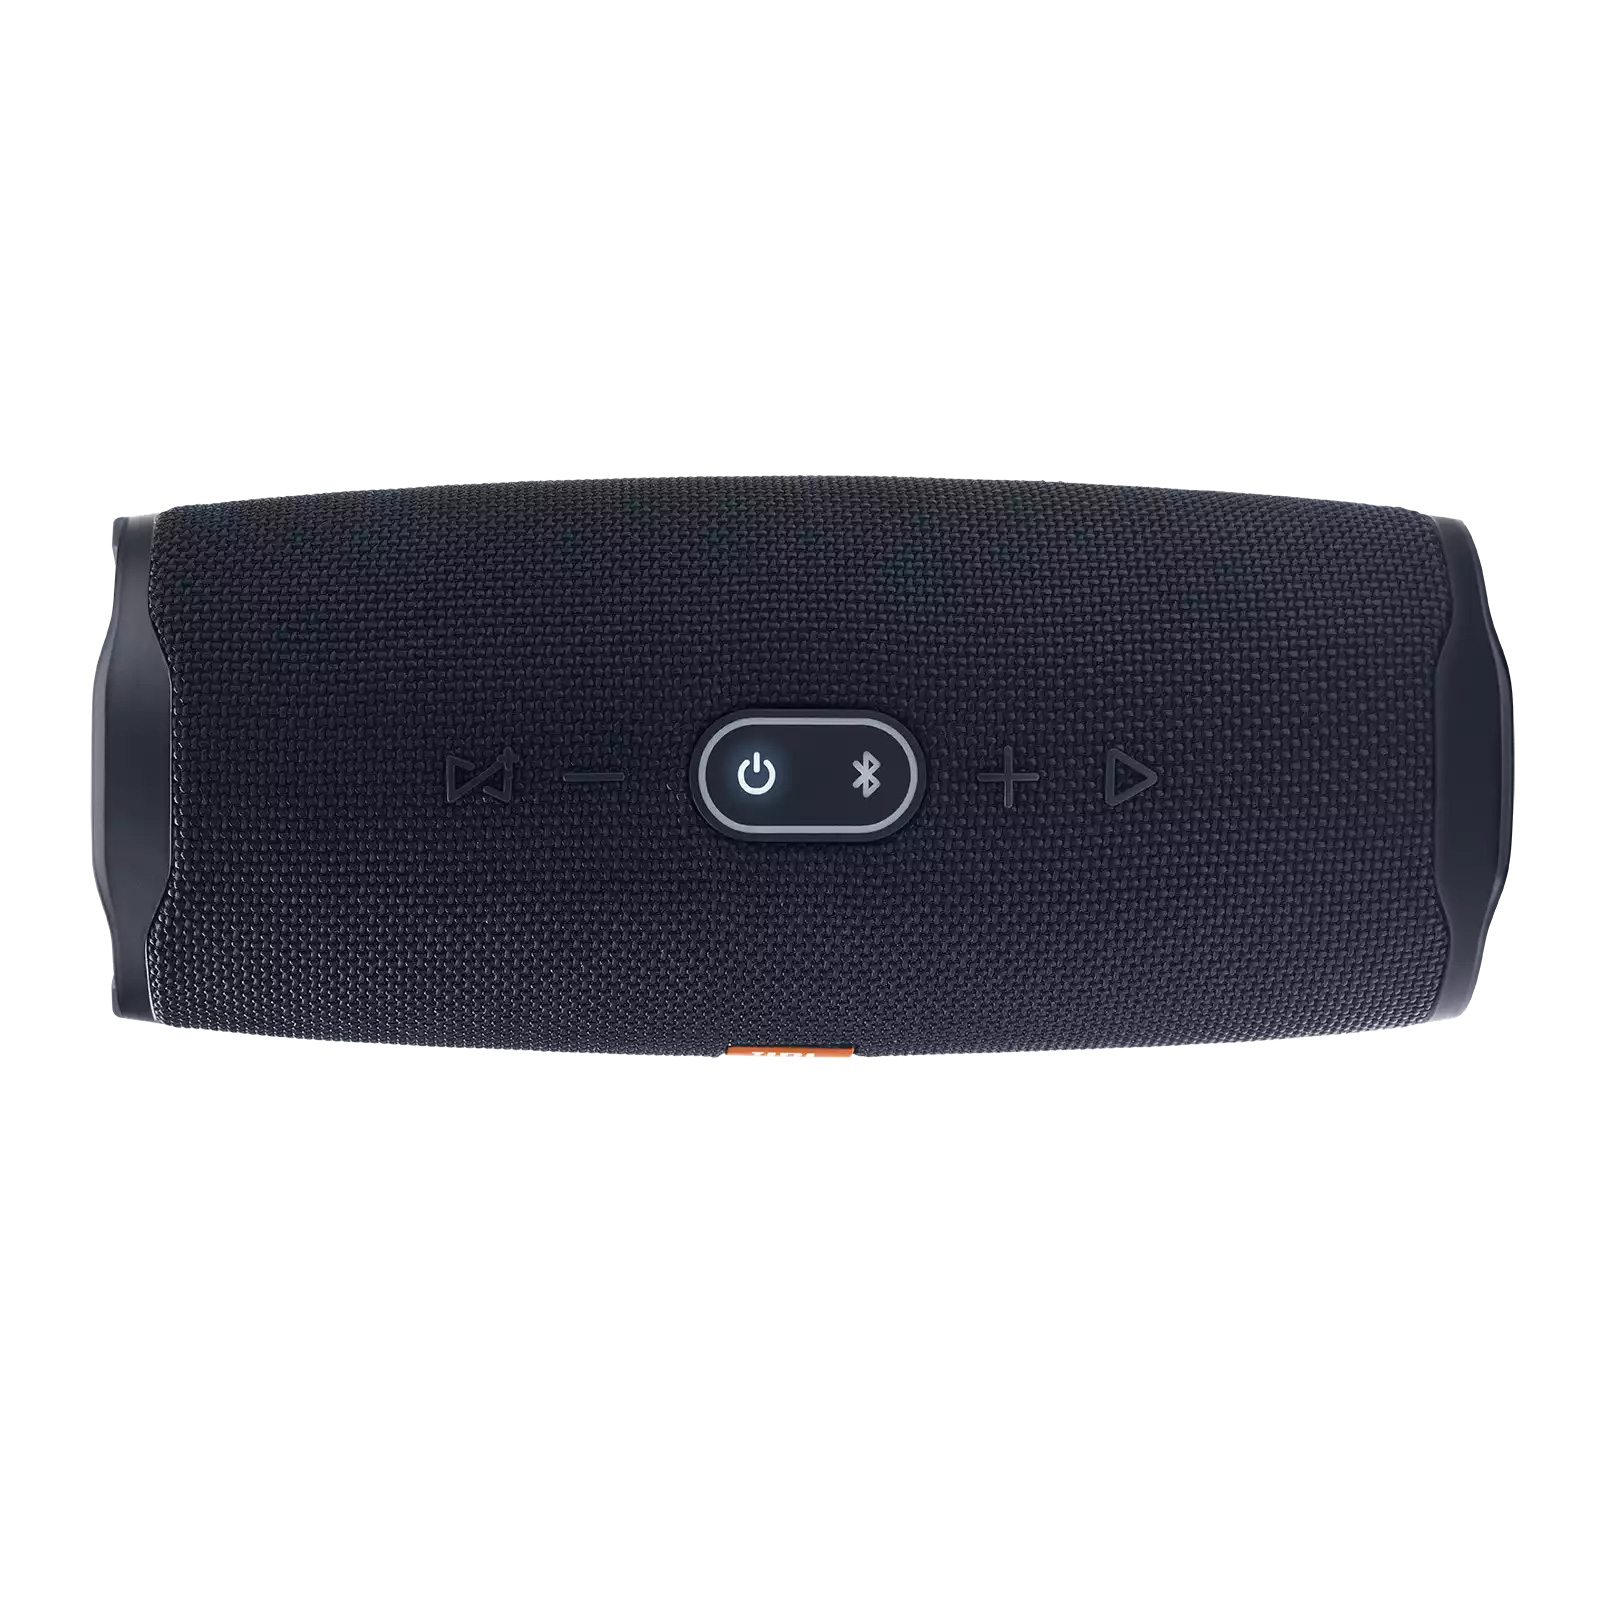 JBL_Charge4_Top_Midnight_Black_1605x1605px